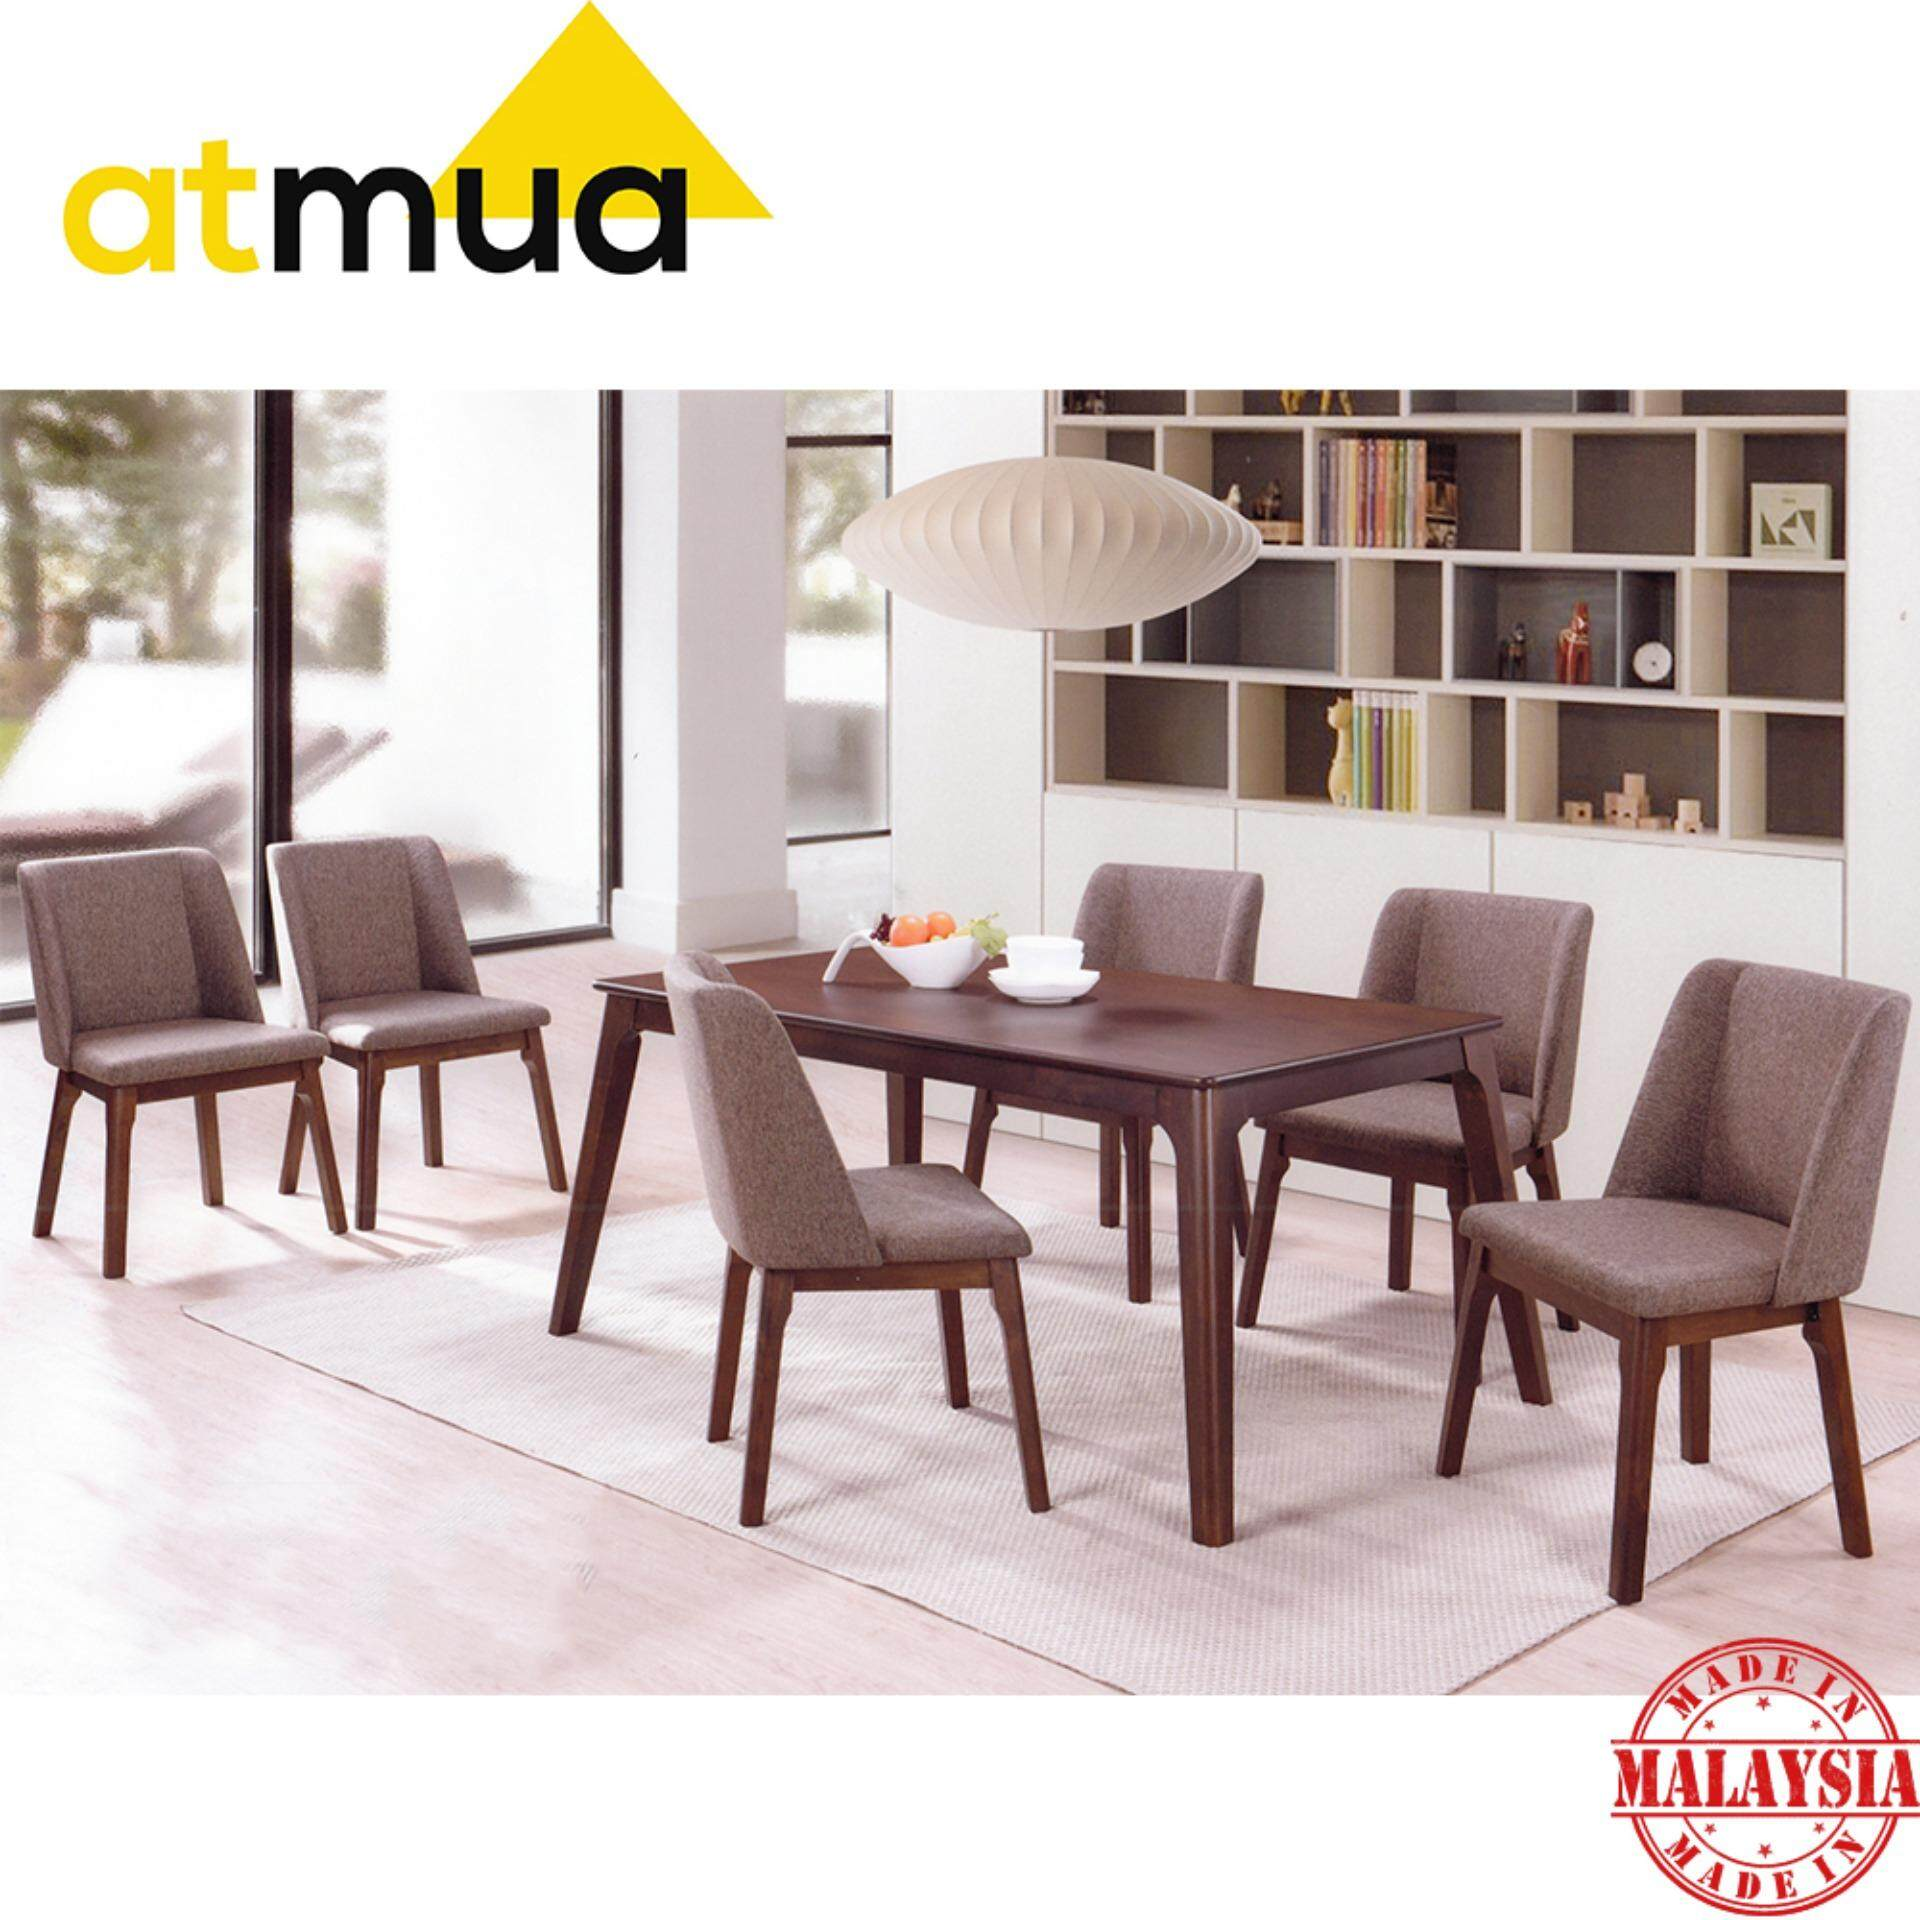 Atmua Bucket Dining Set (1 Table + 6 Chairs) - Modern Style [Full Solid Rubber Wood]